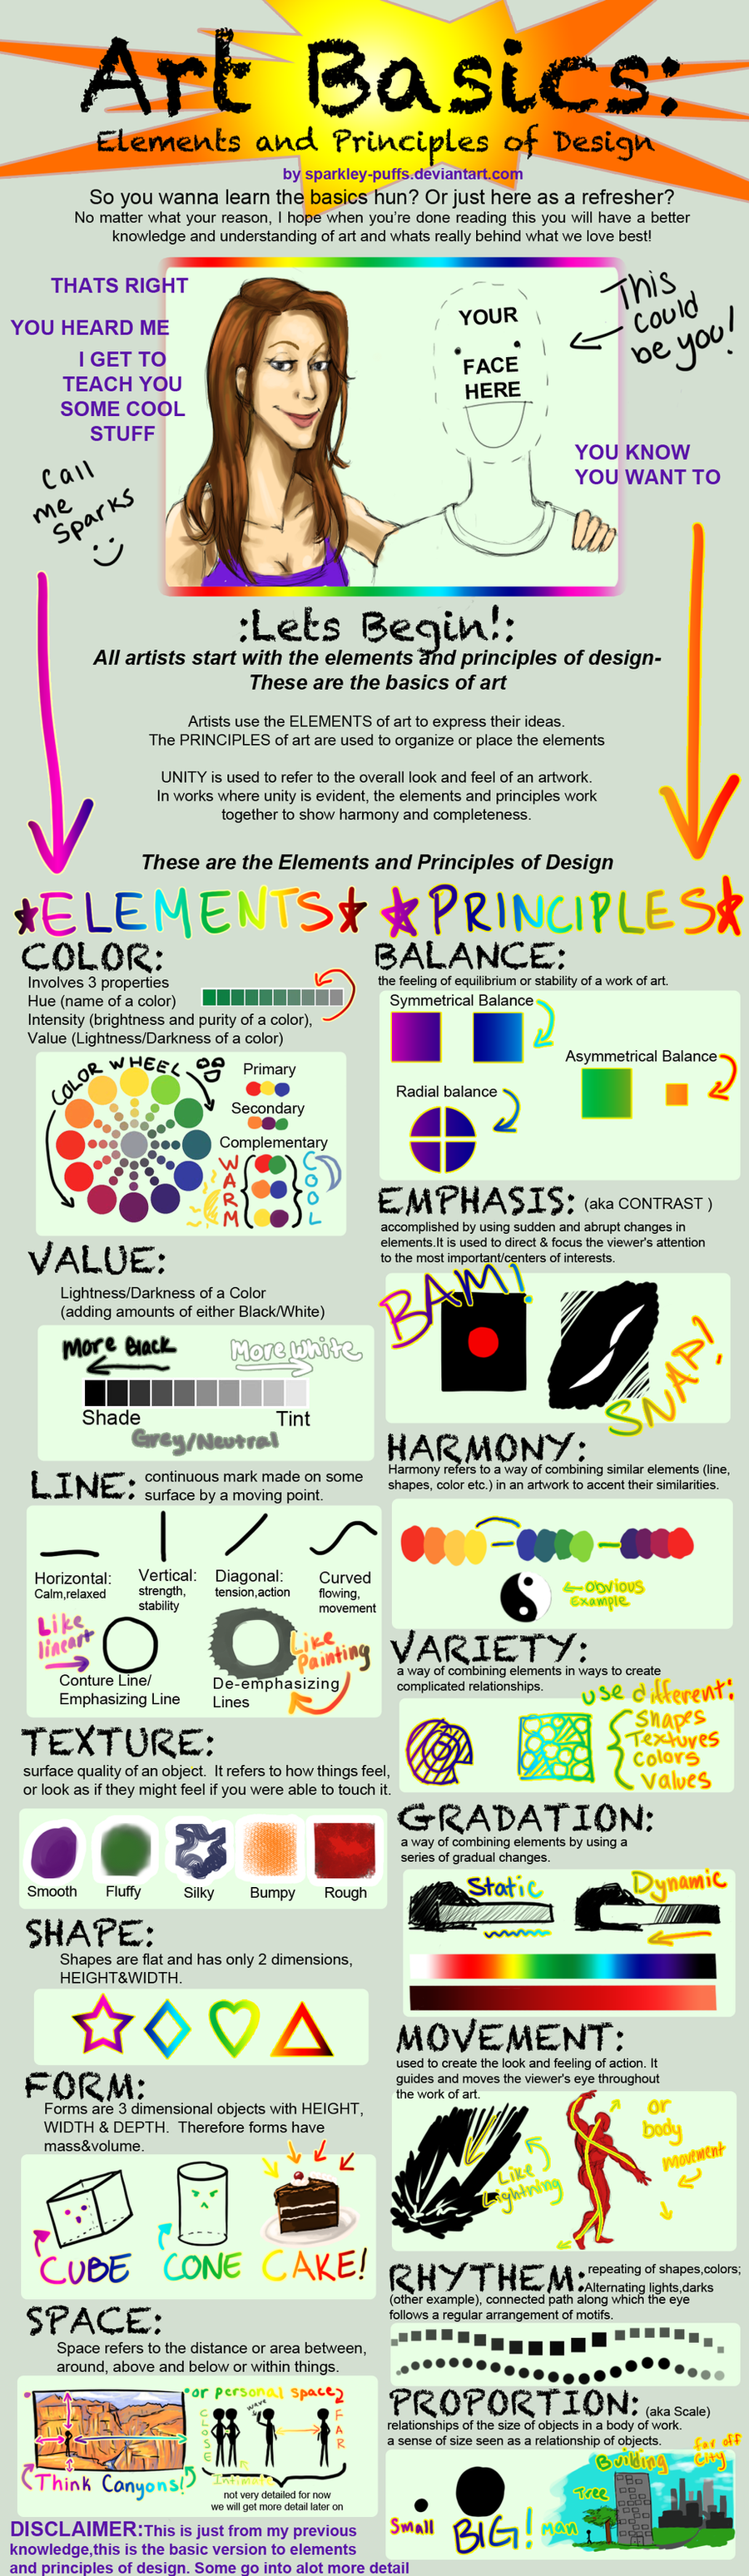 What Are The Elements Of Art And Design : Elements principles of design by thecuddlykoalawhale on